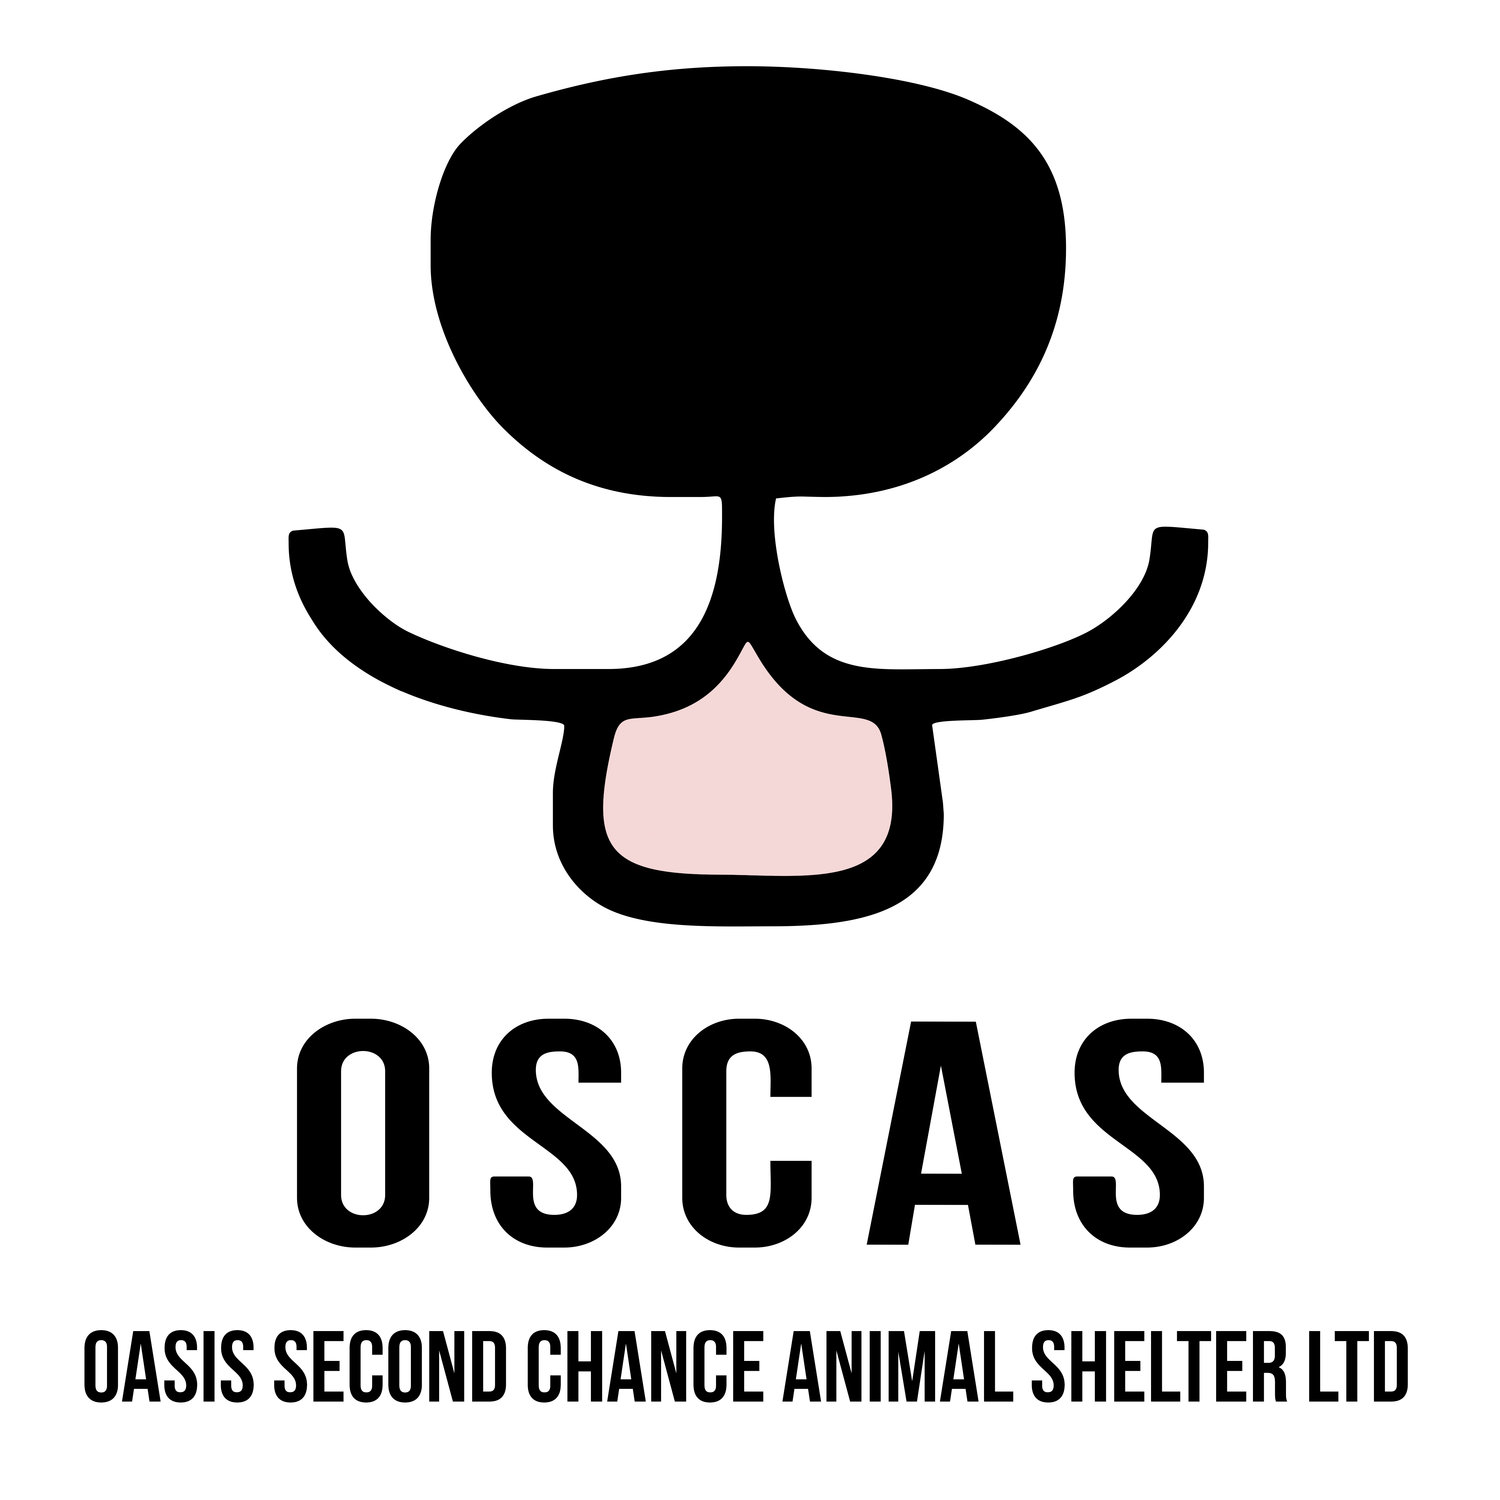 Oasis Second Chance Animal Shelter